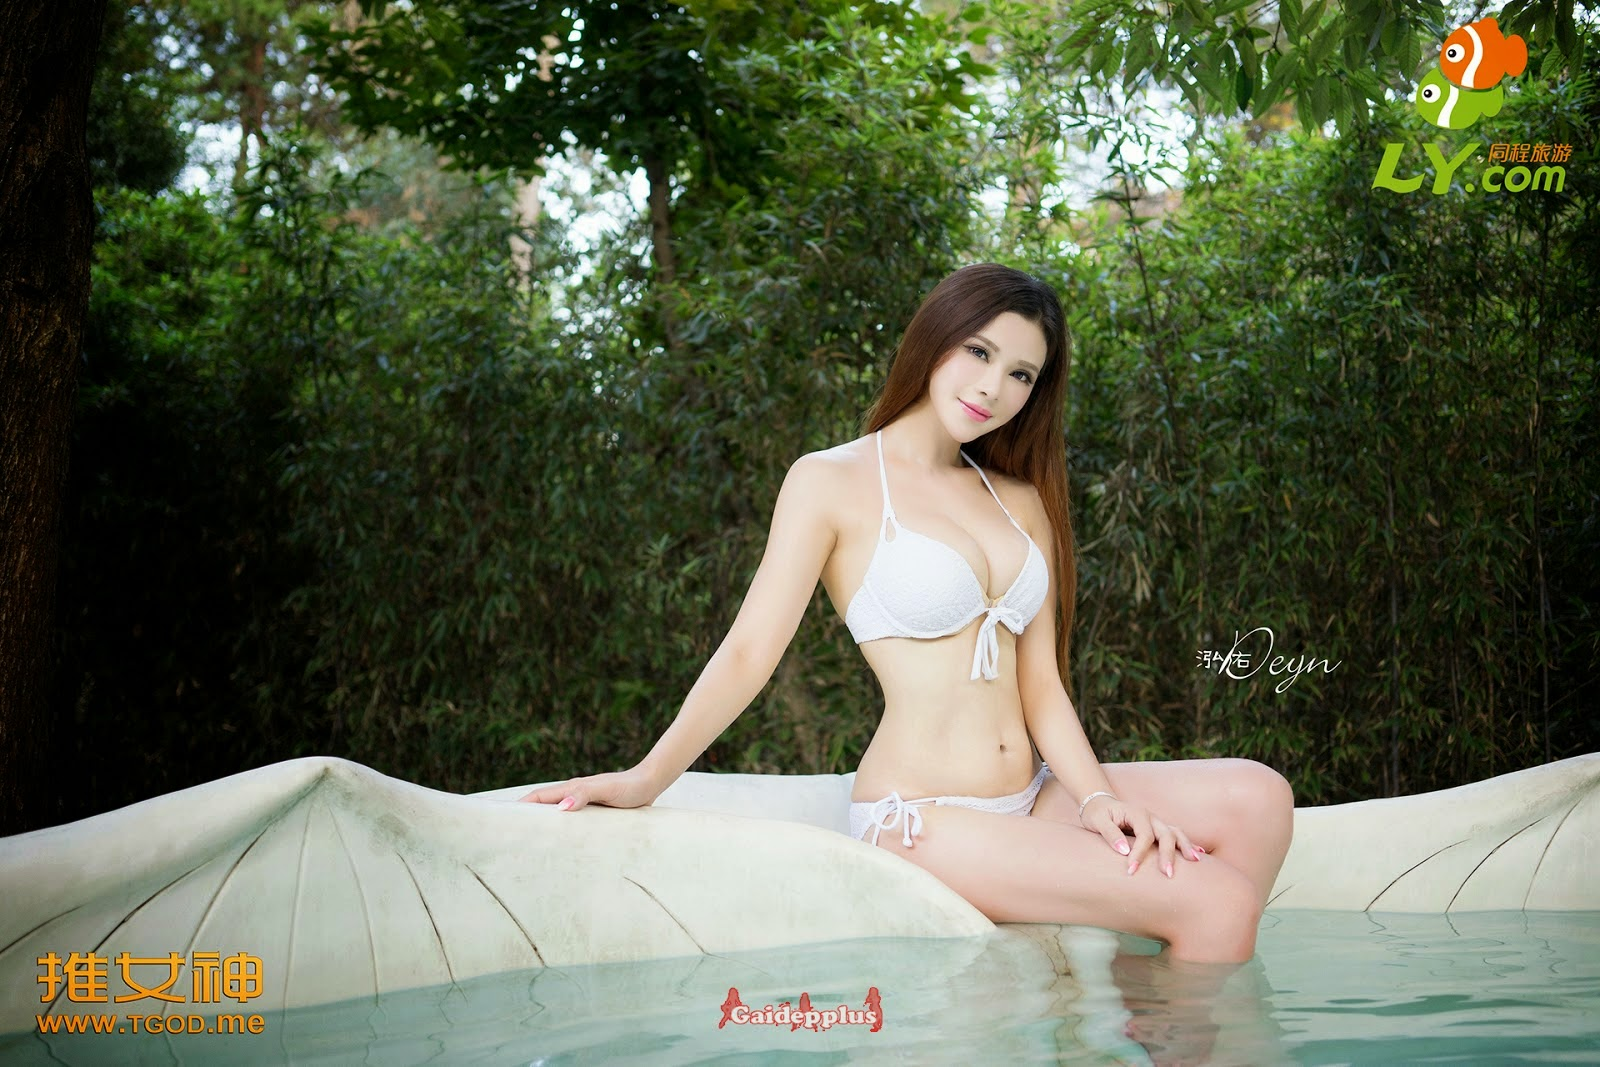 showing hot body in swimming pool